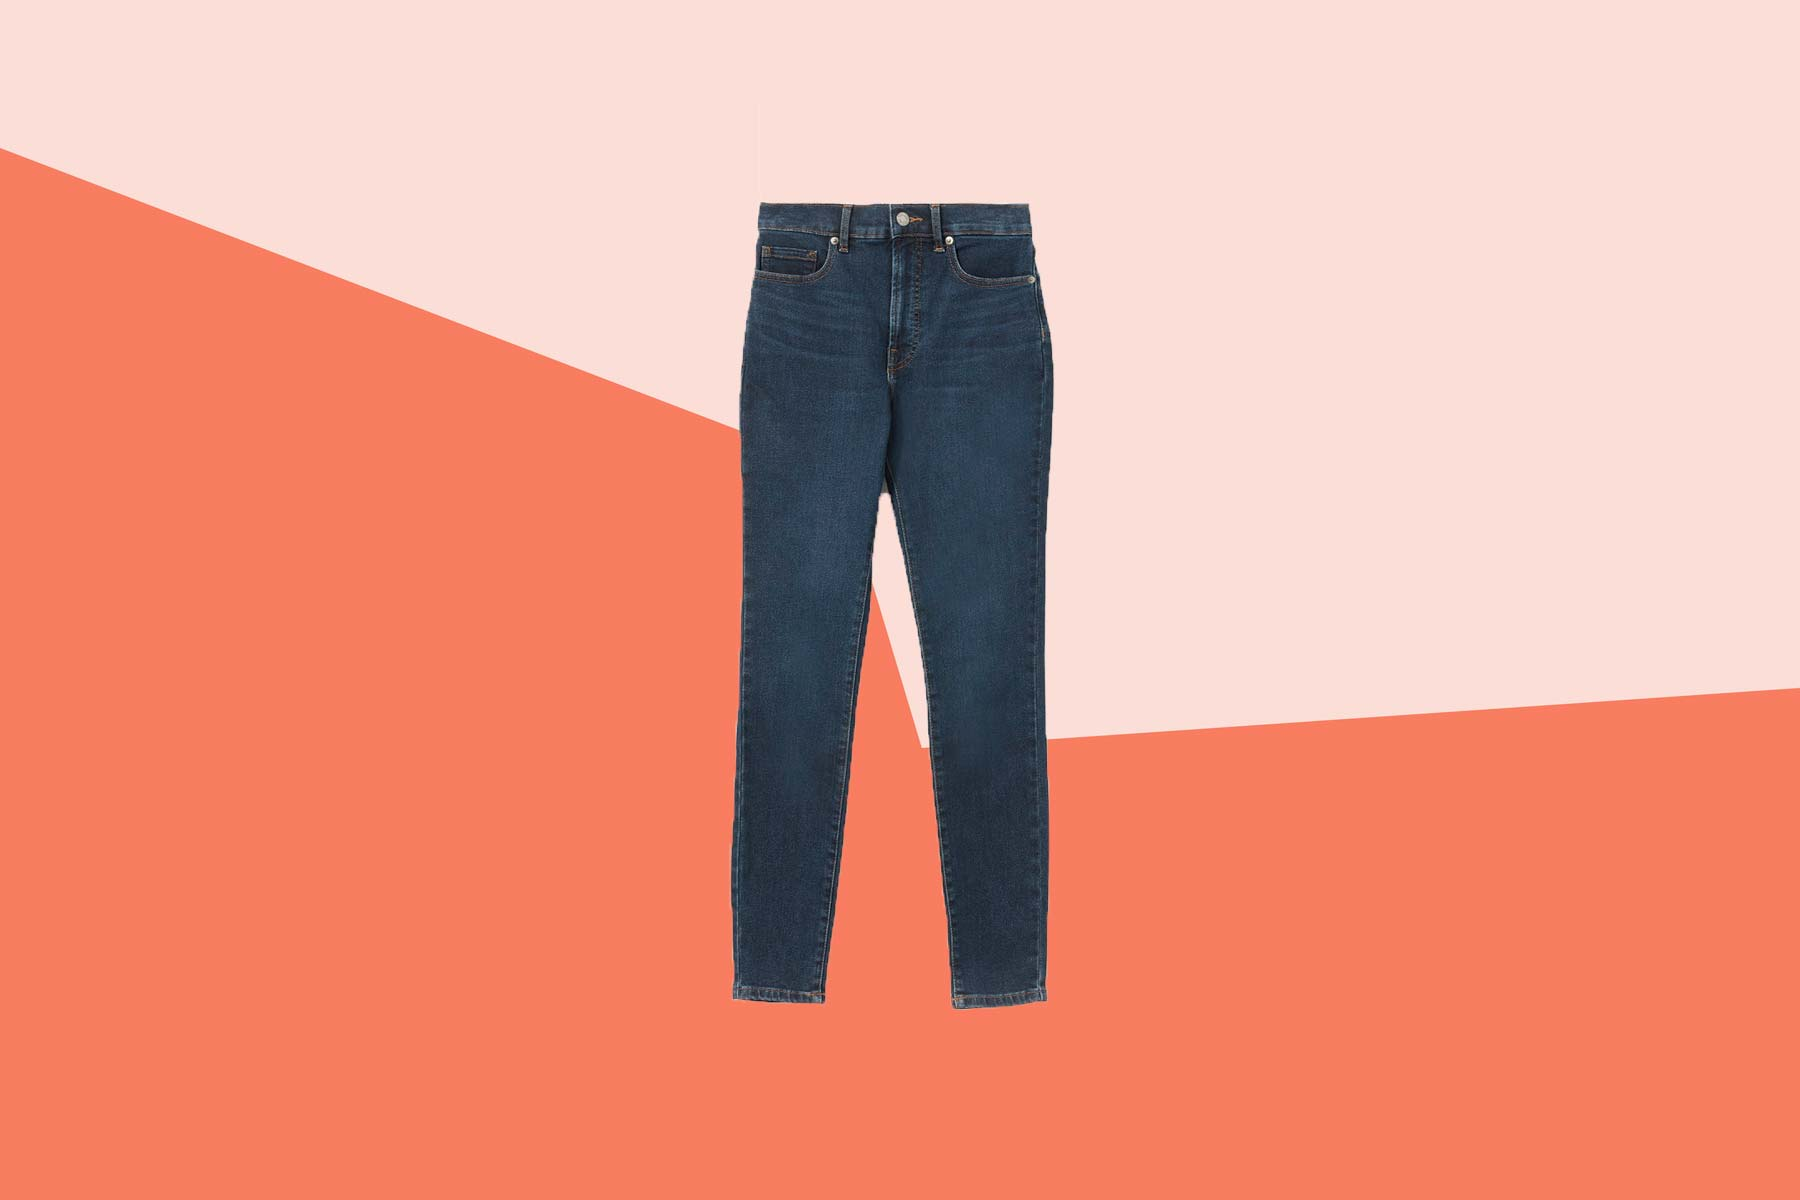 4138603b1bd0 All Everlane Jeans Are $50 Today–Here's What to Scoop Up | Real Simple